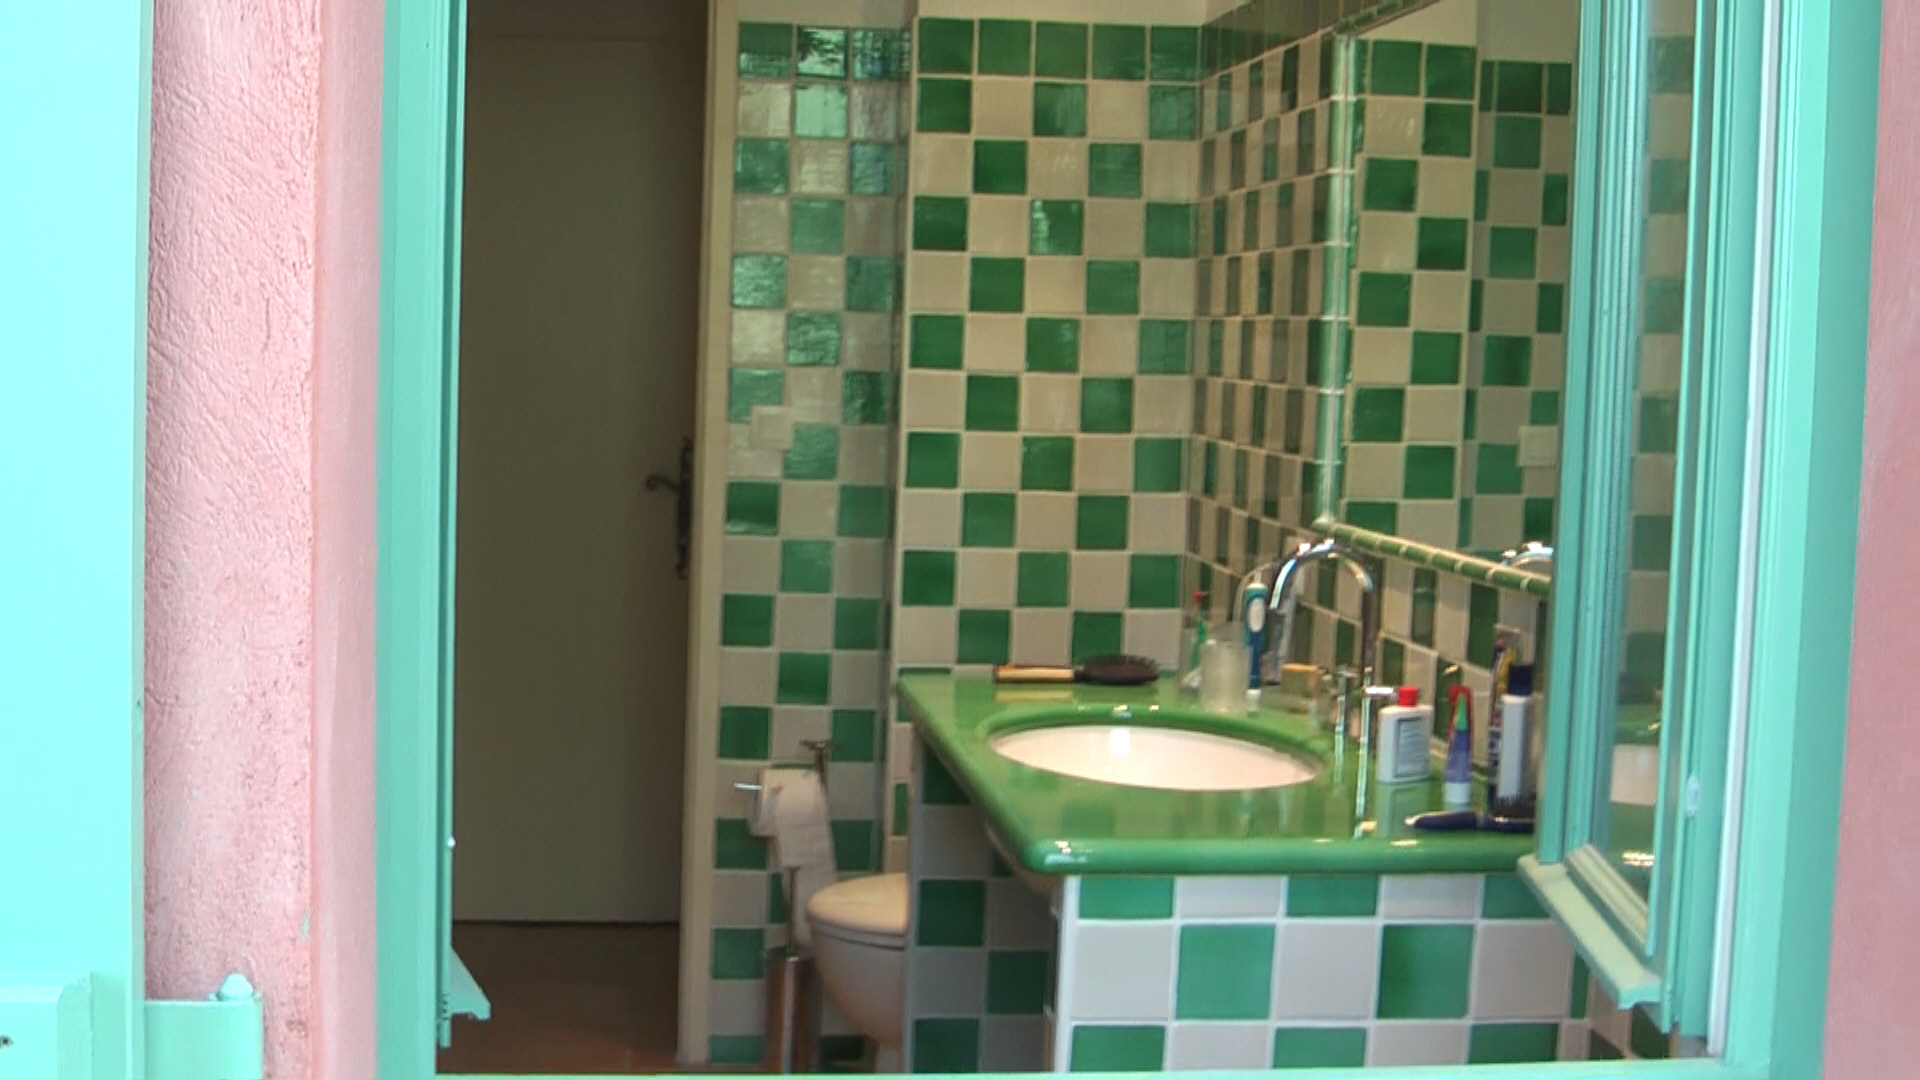 The Floors Are All Covered With Provencal Style Tiles. A Housework Room  With Washing/